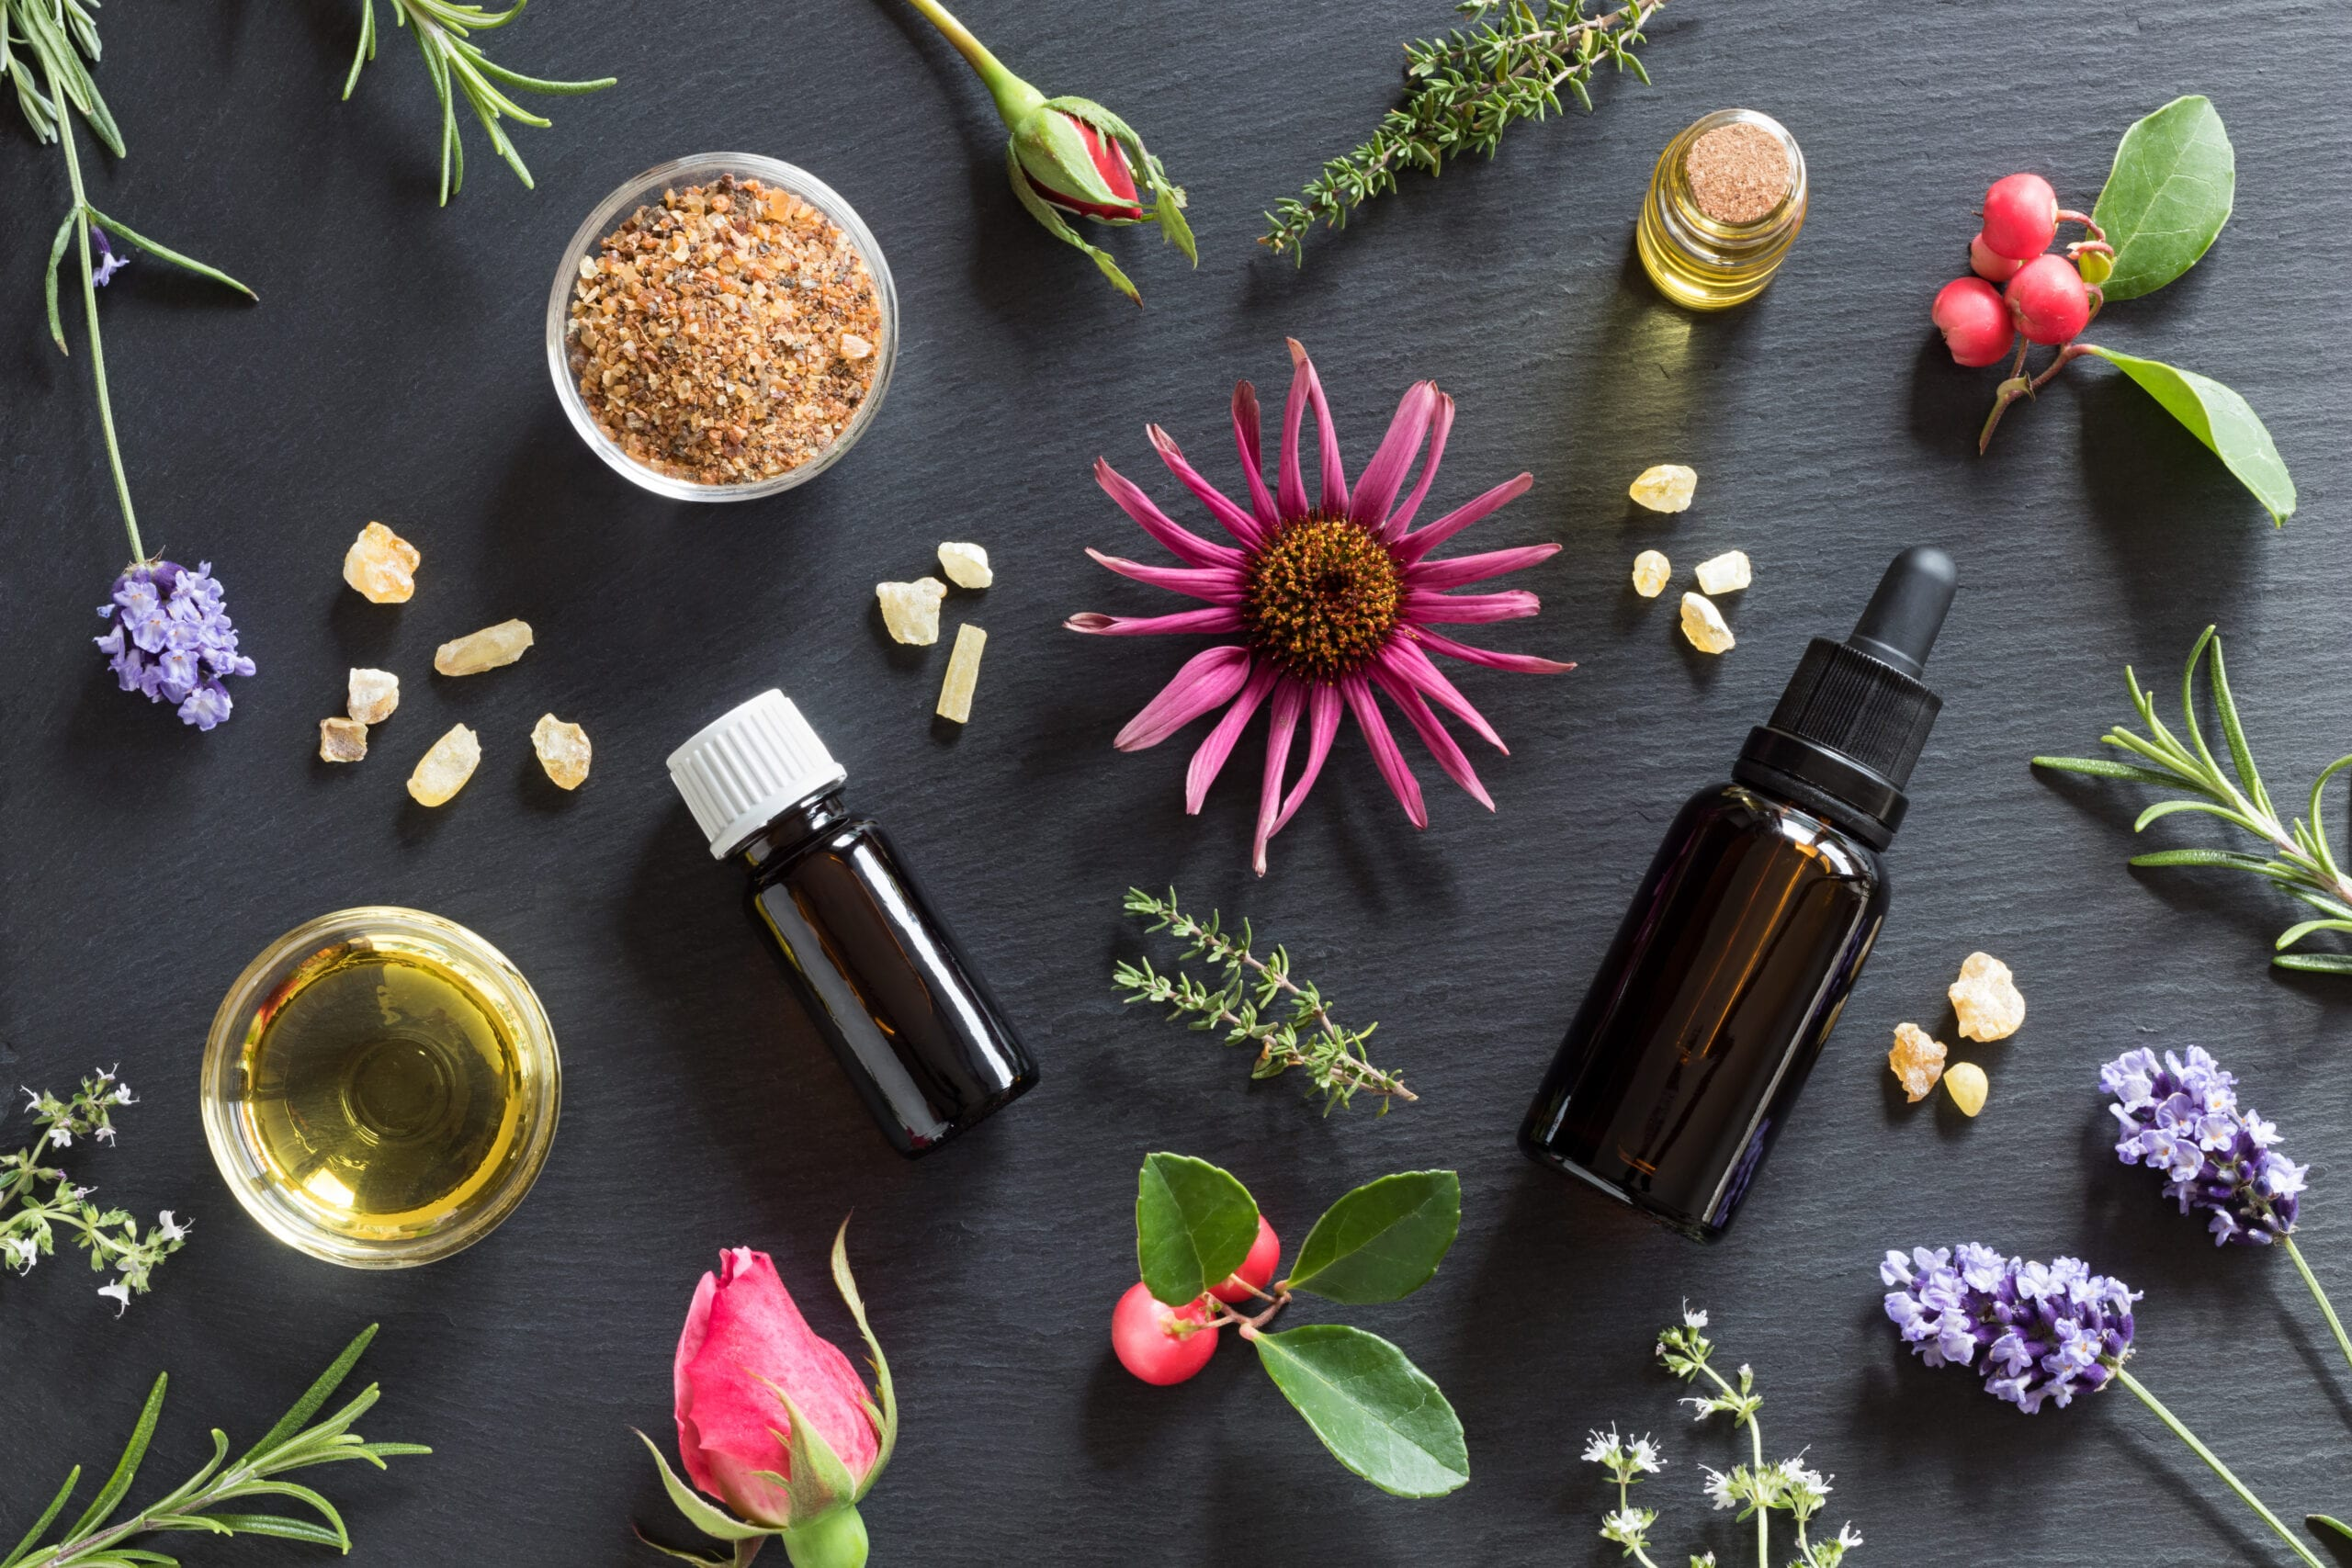 Daisies, roses, lavender, and sprigs of herbs lie on a dark wooden background with glass essential oil containers. Some have a dropper lid, some have a white top